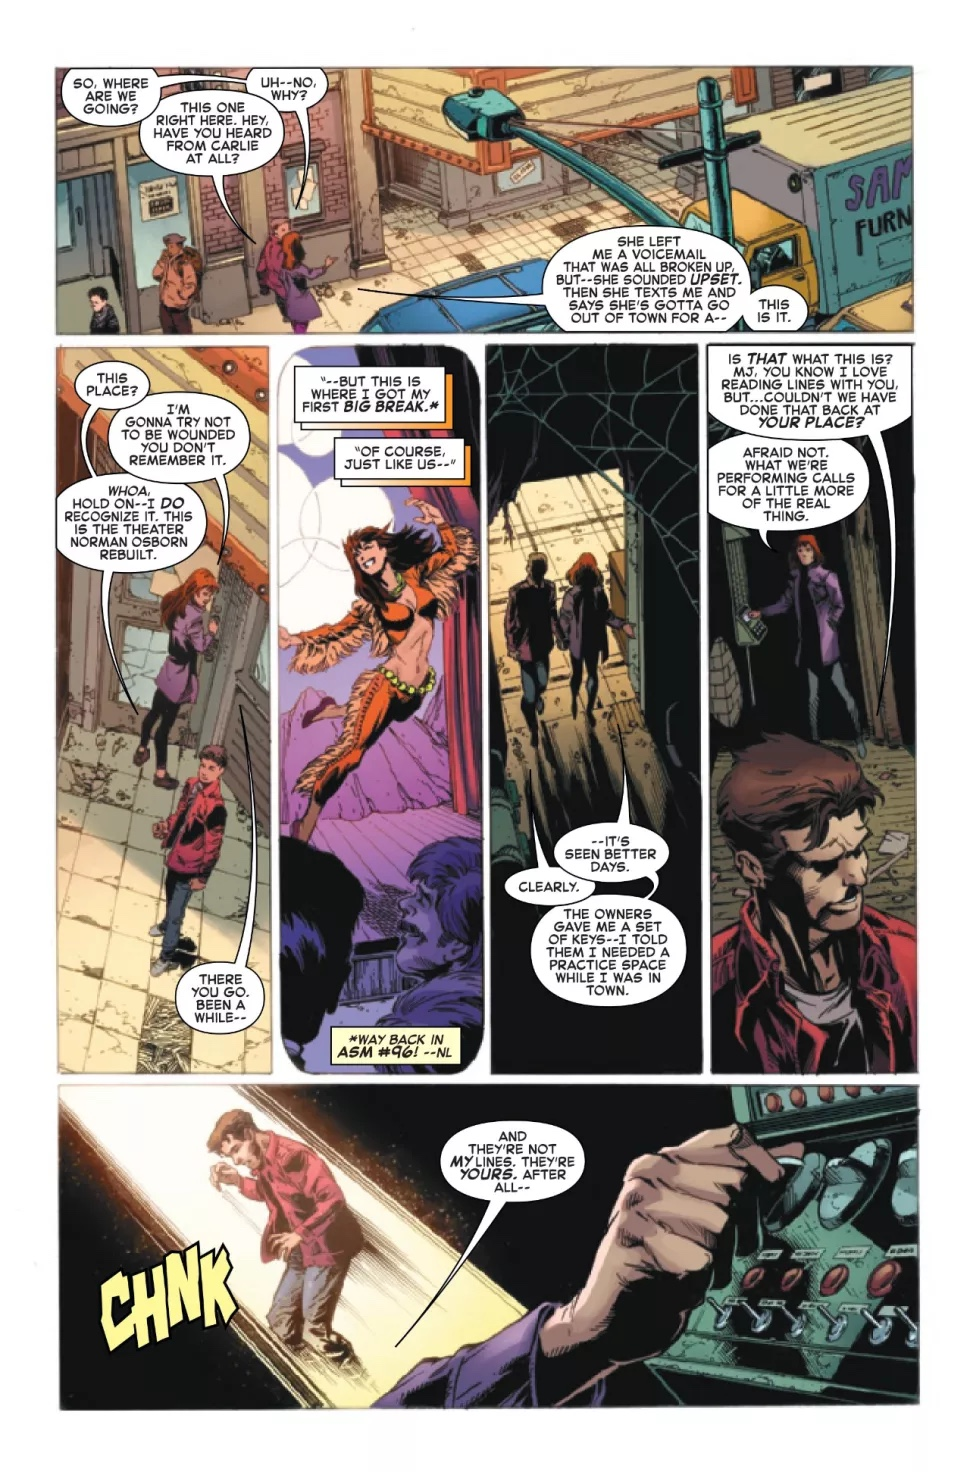 Amazing Spider-Man #60 preview